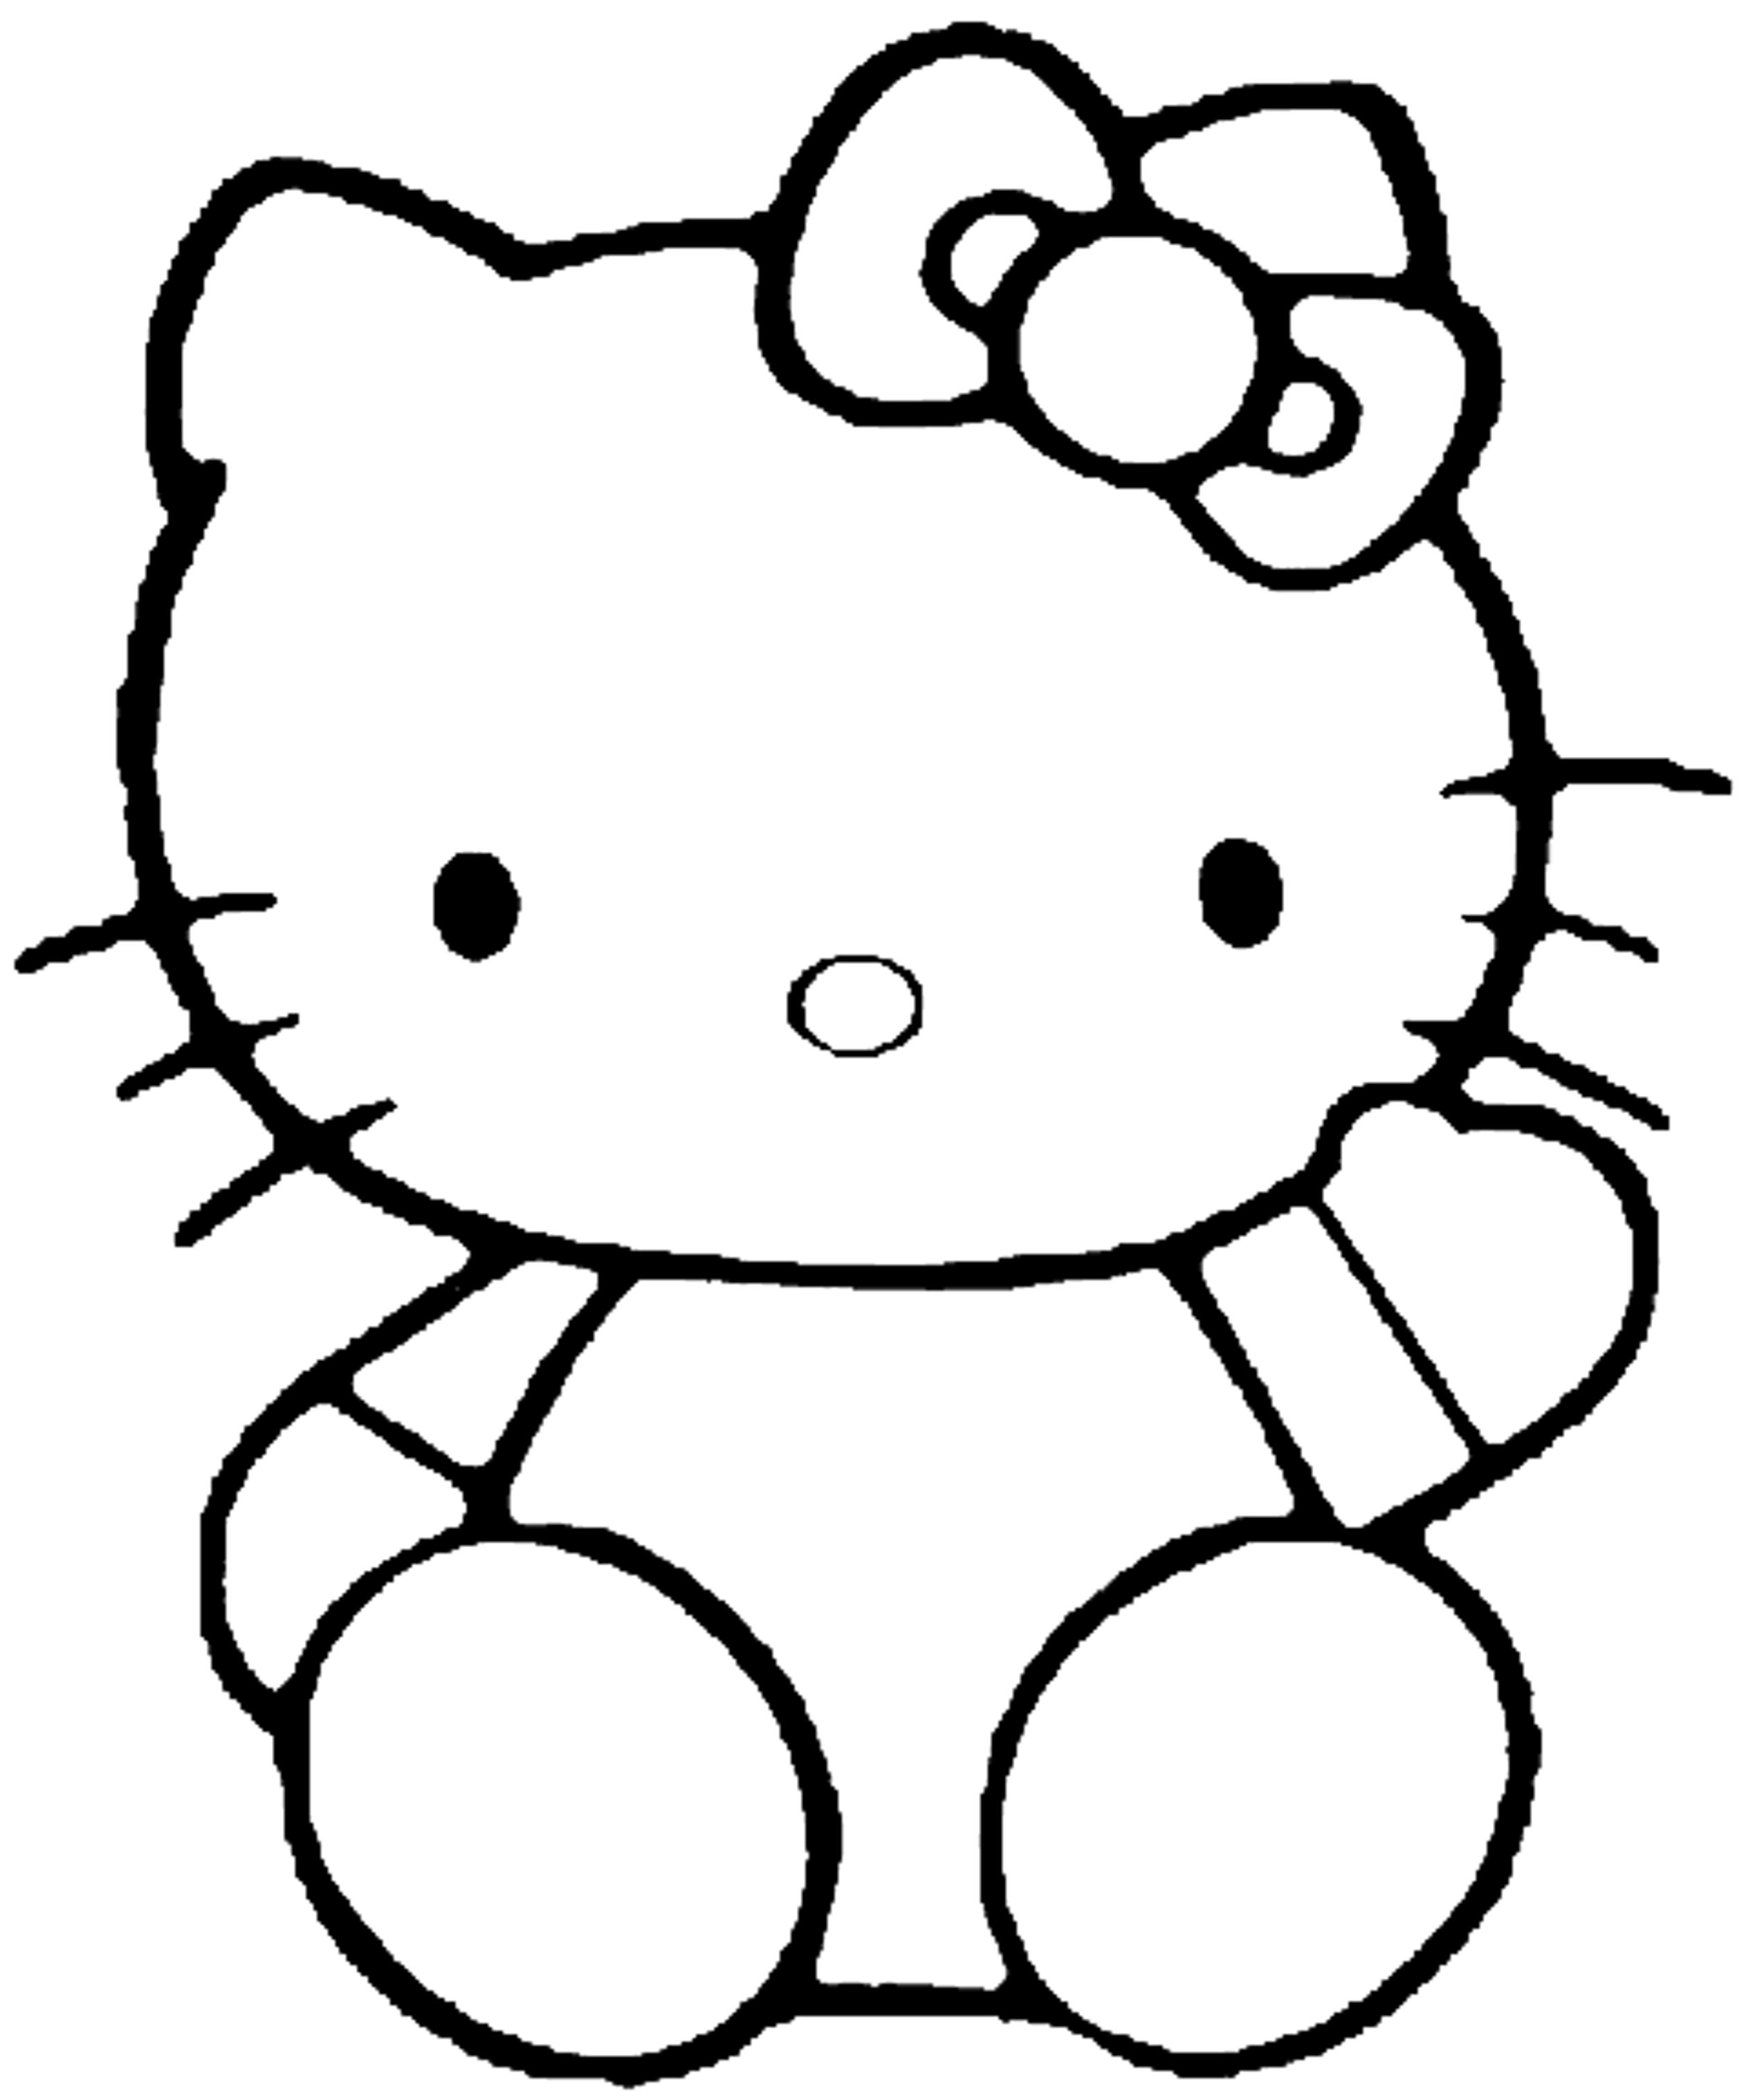 2550x3035 Easy Coloring Pages For Girls Printable Ribsvigyapan Easy Easy